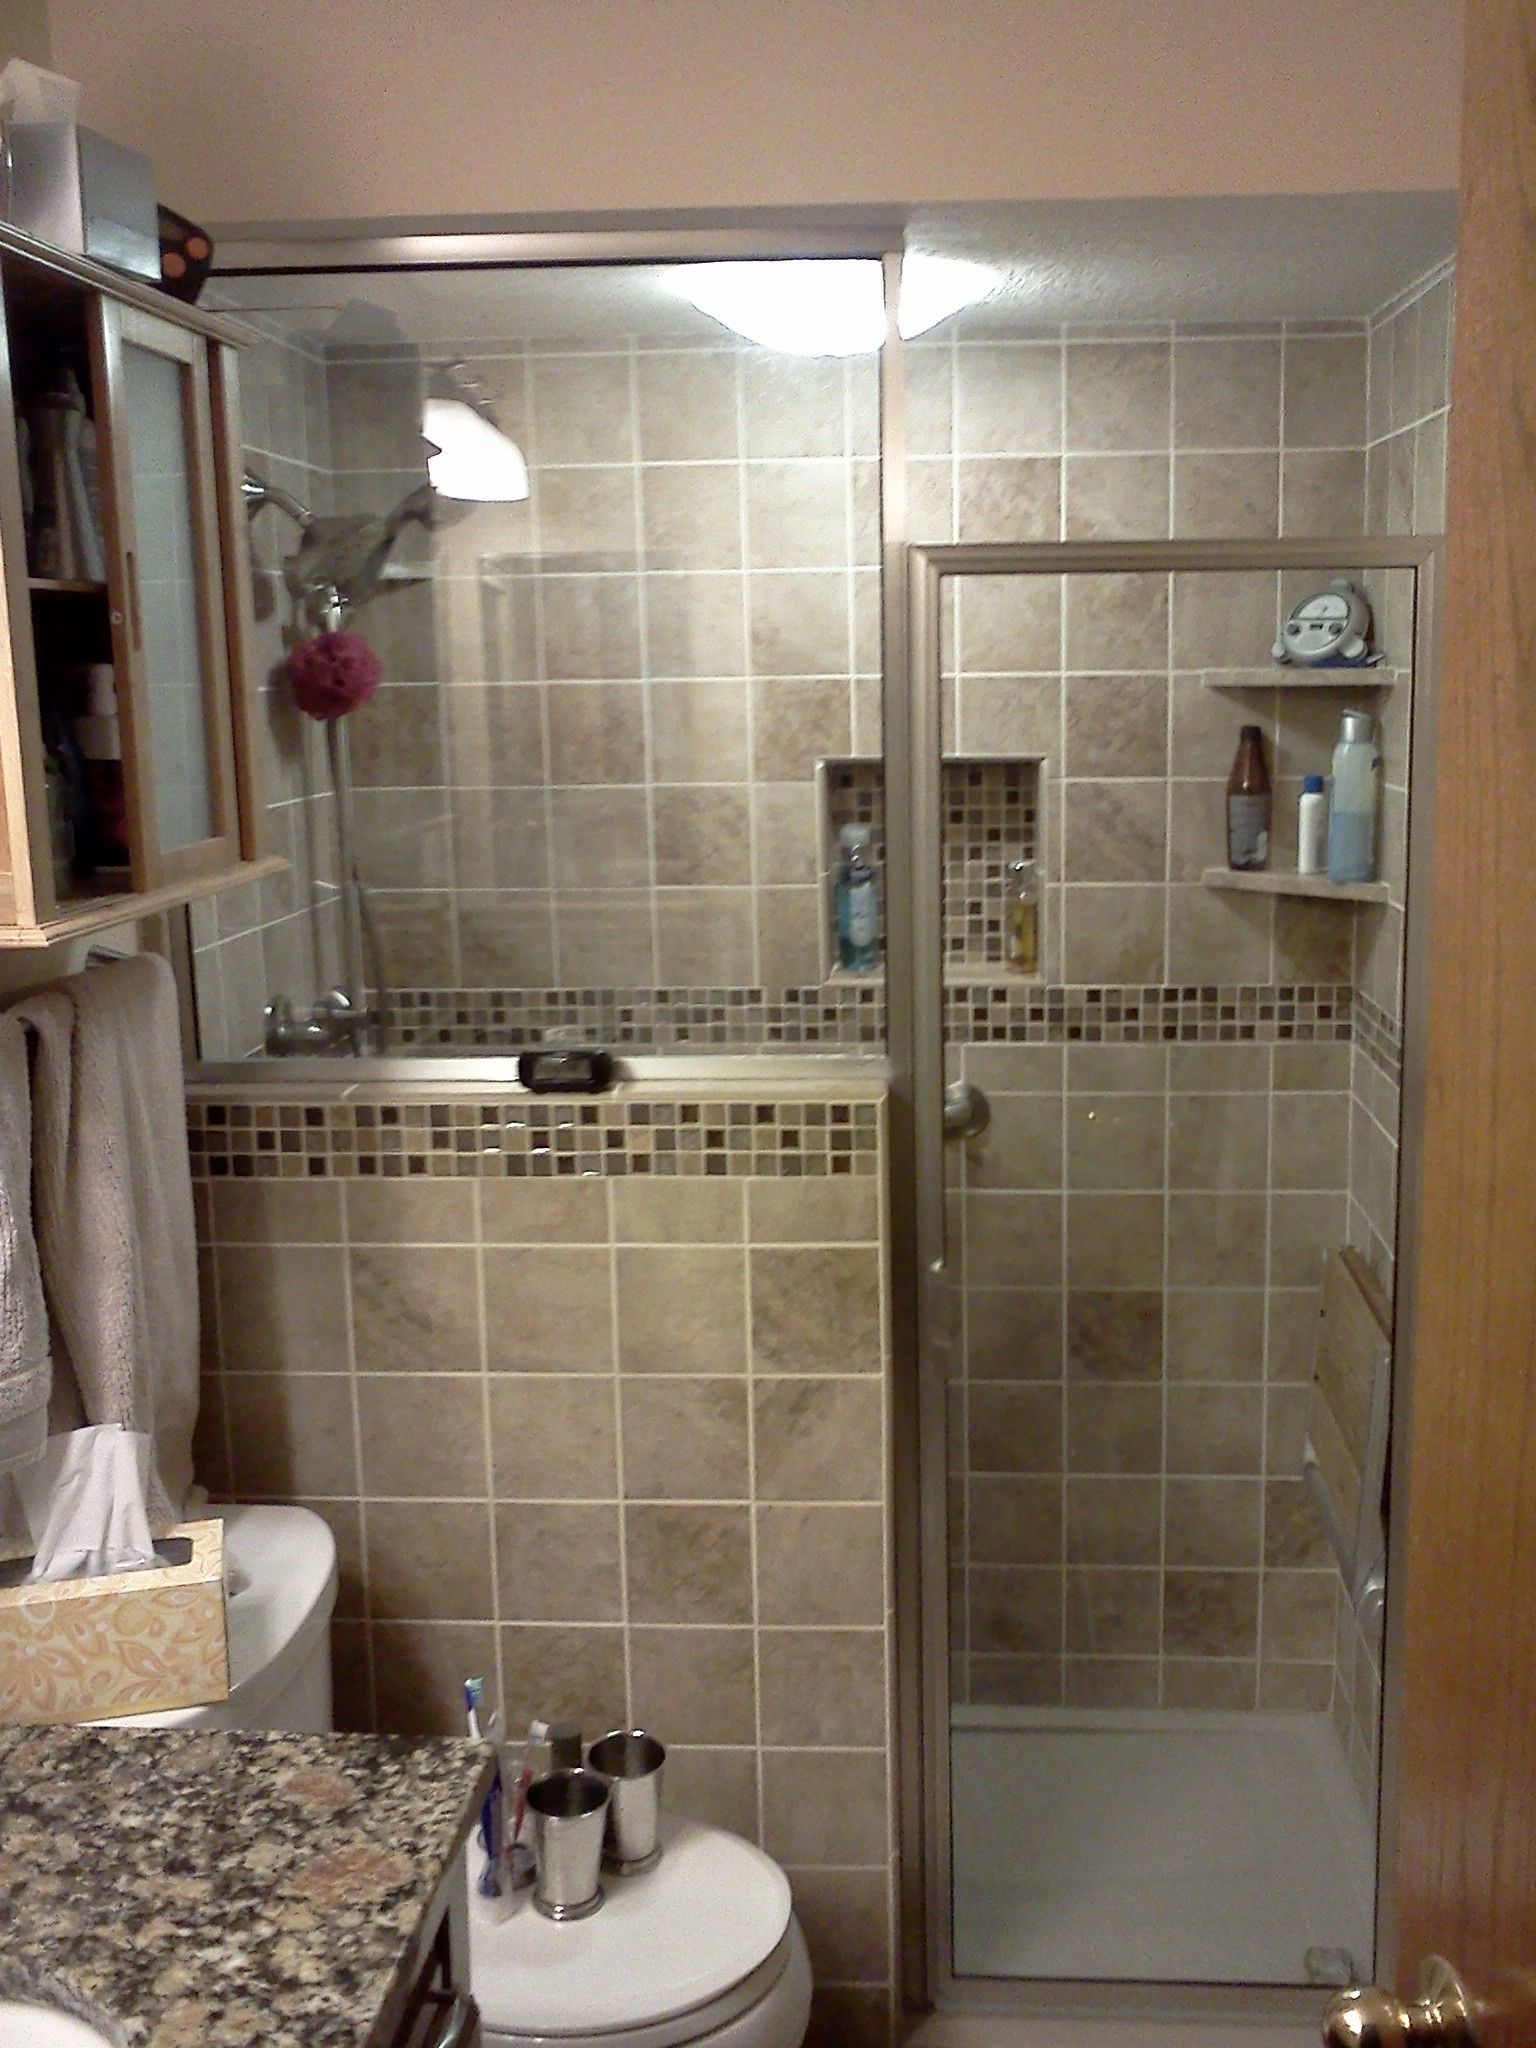 bathroom remodel conversion from tub to shower with privacy wall bathroom remodel conversion from tub to shower with privacy wall